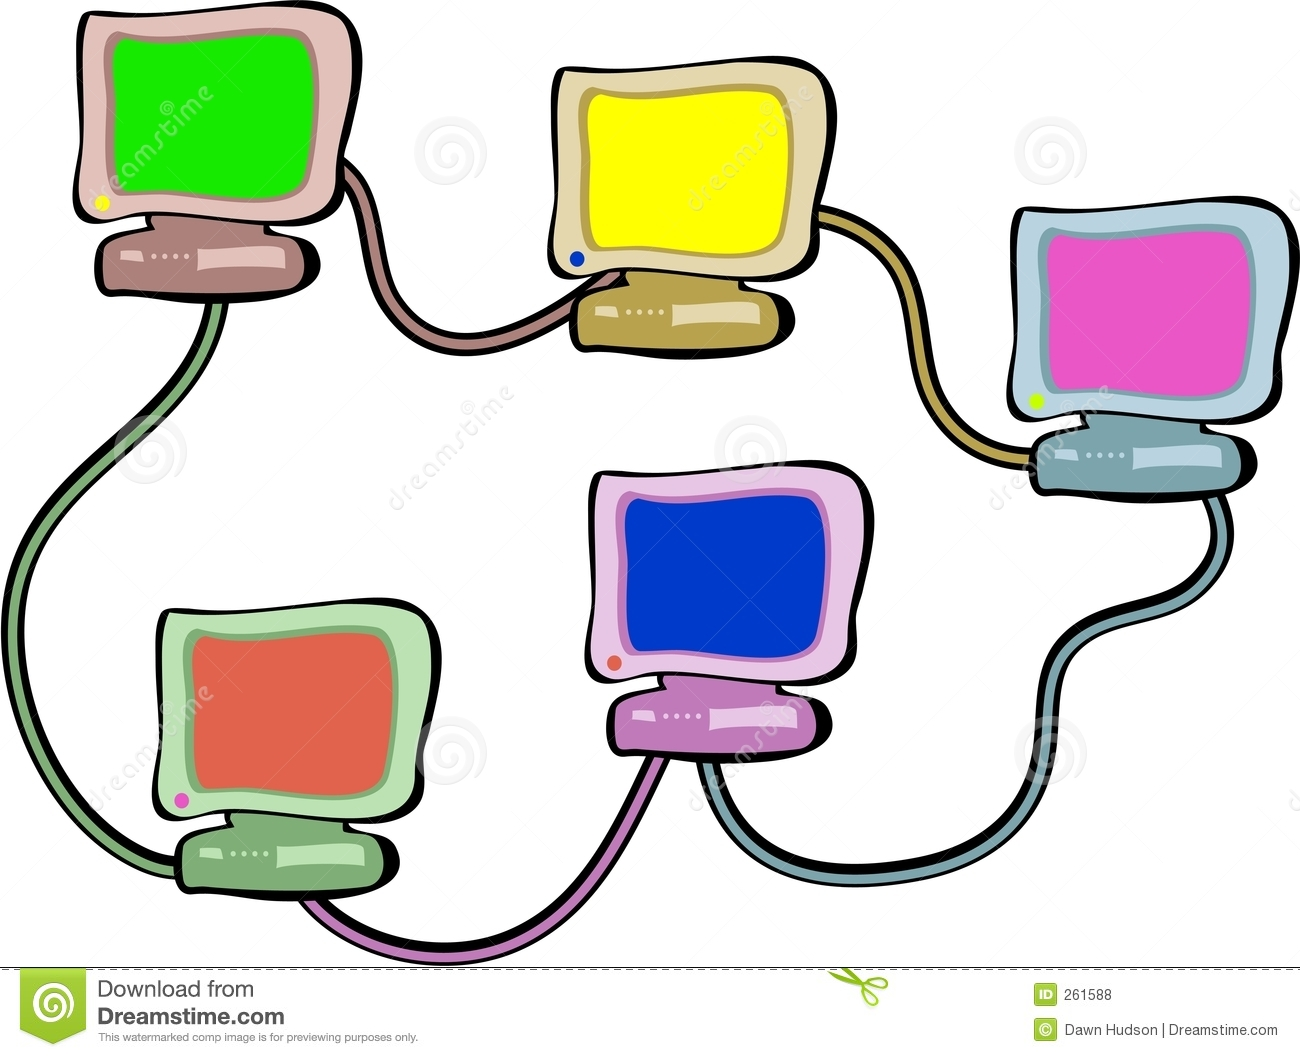 Networking 20clipart Clipart Panda Free -Networking 20clipart Clipart Panda Free Clipart Images-14